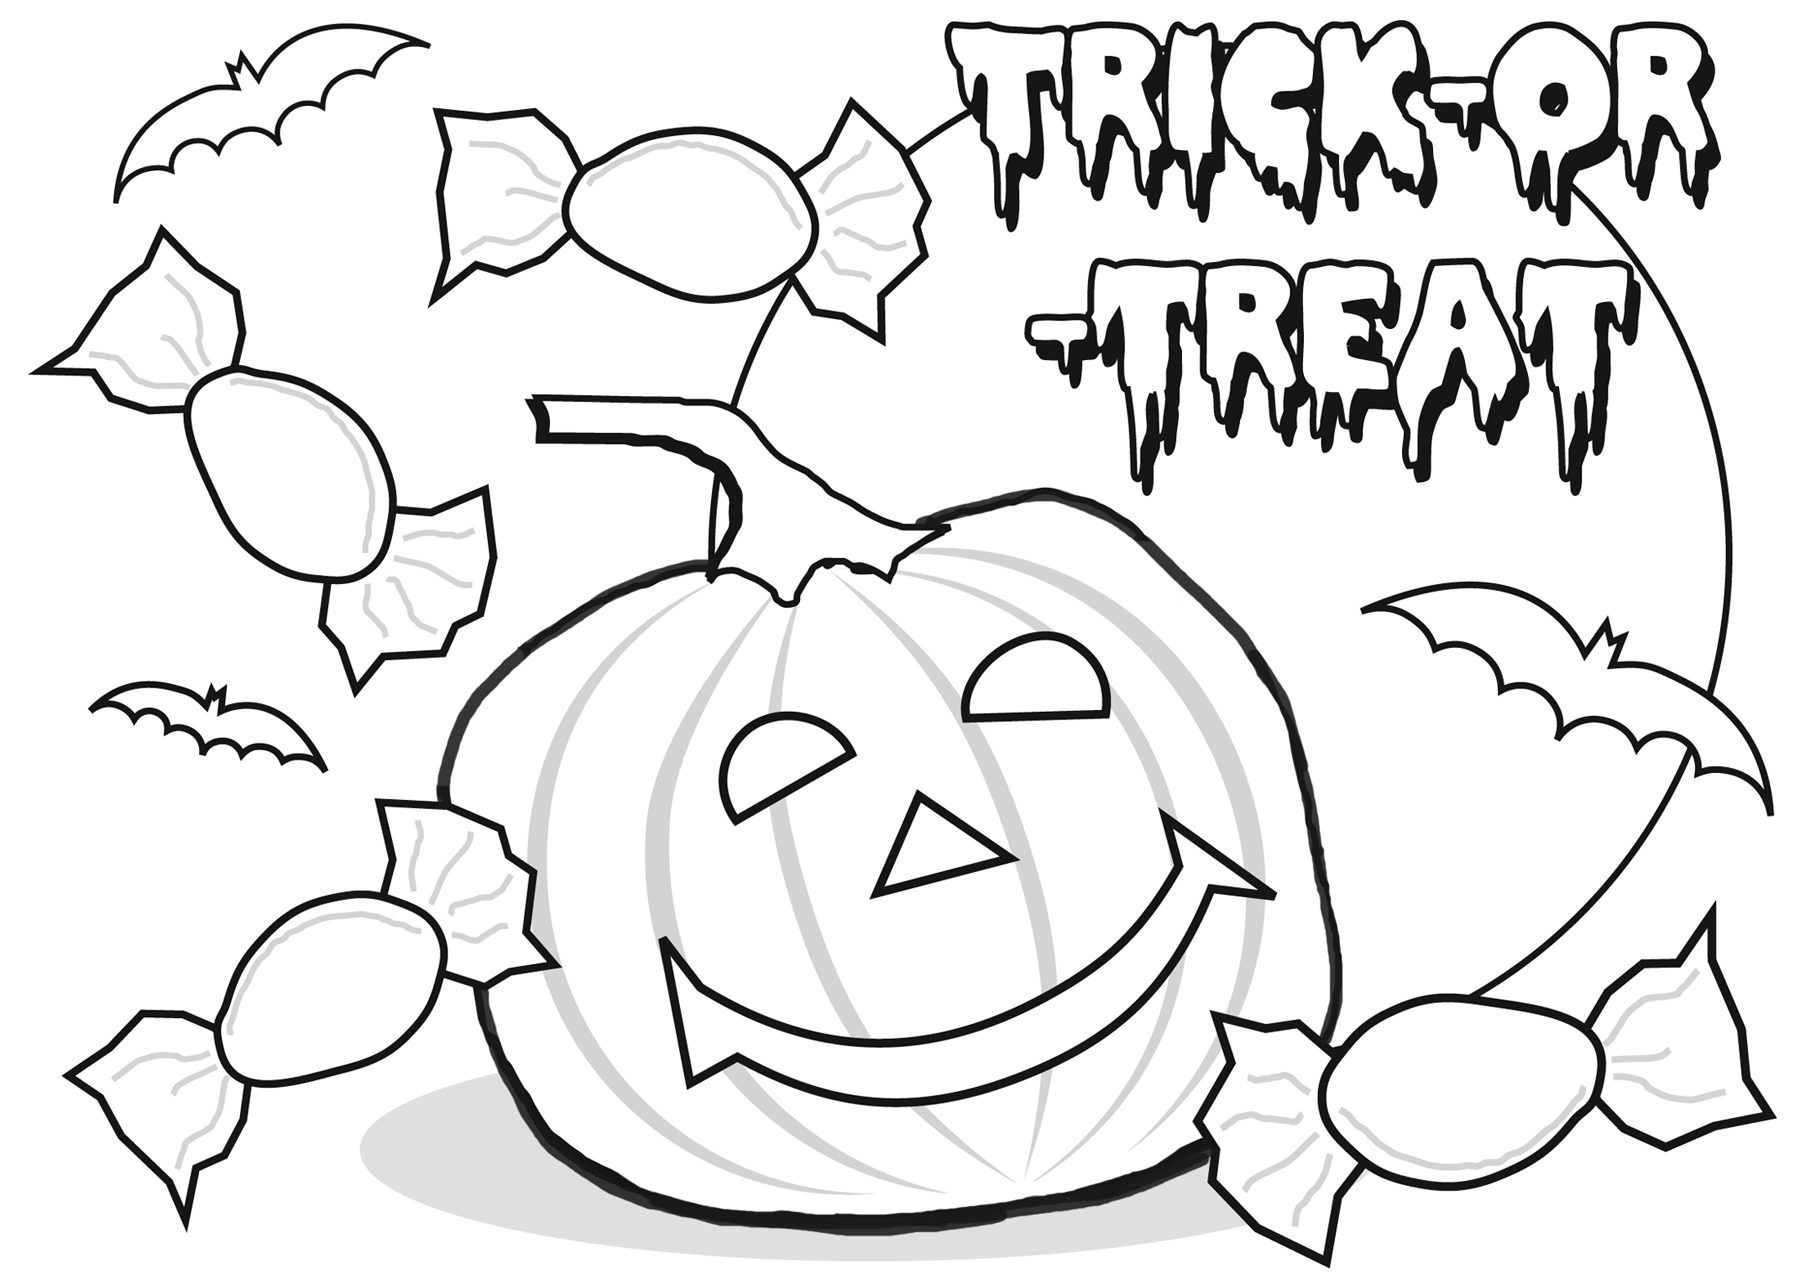 Childrens halloween colouring sheets - Download Childrens Halloween Colouring Sheets